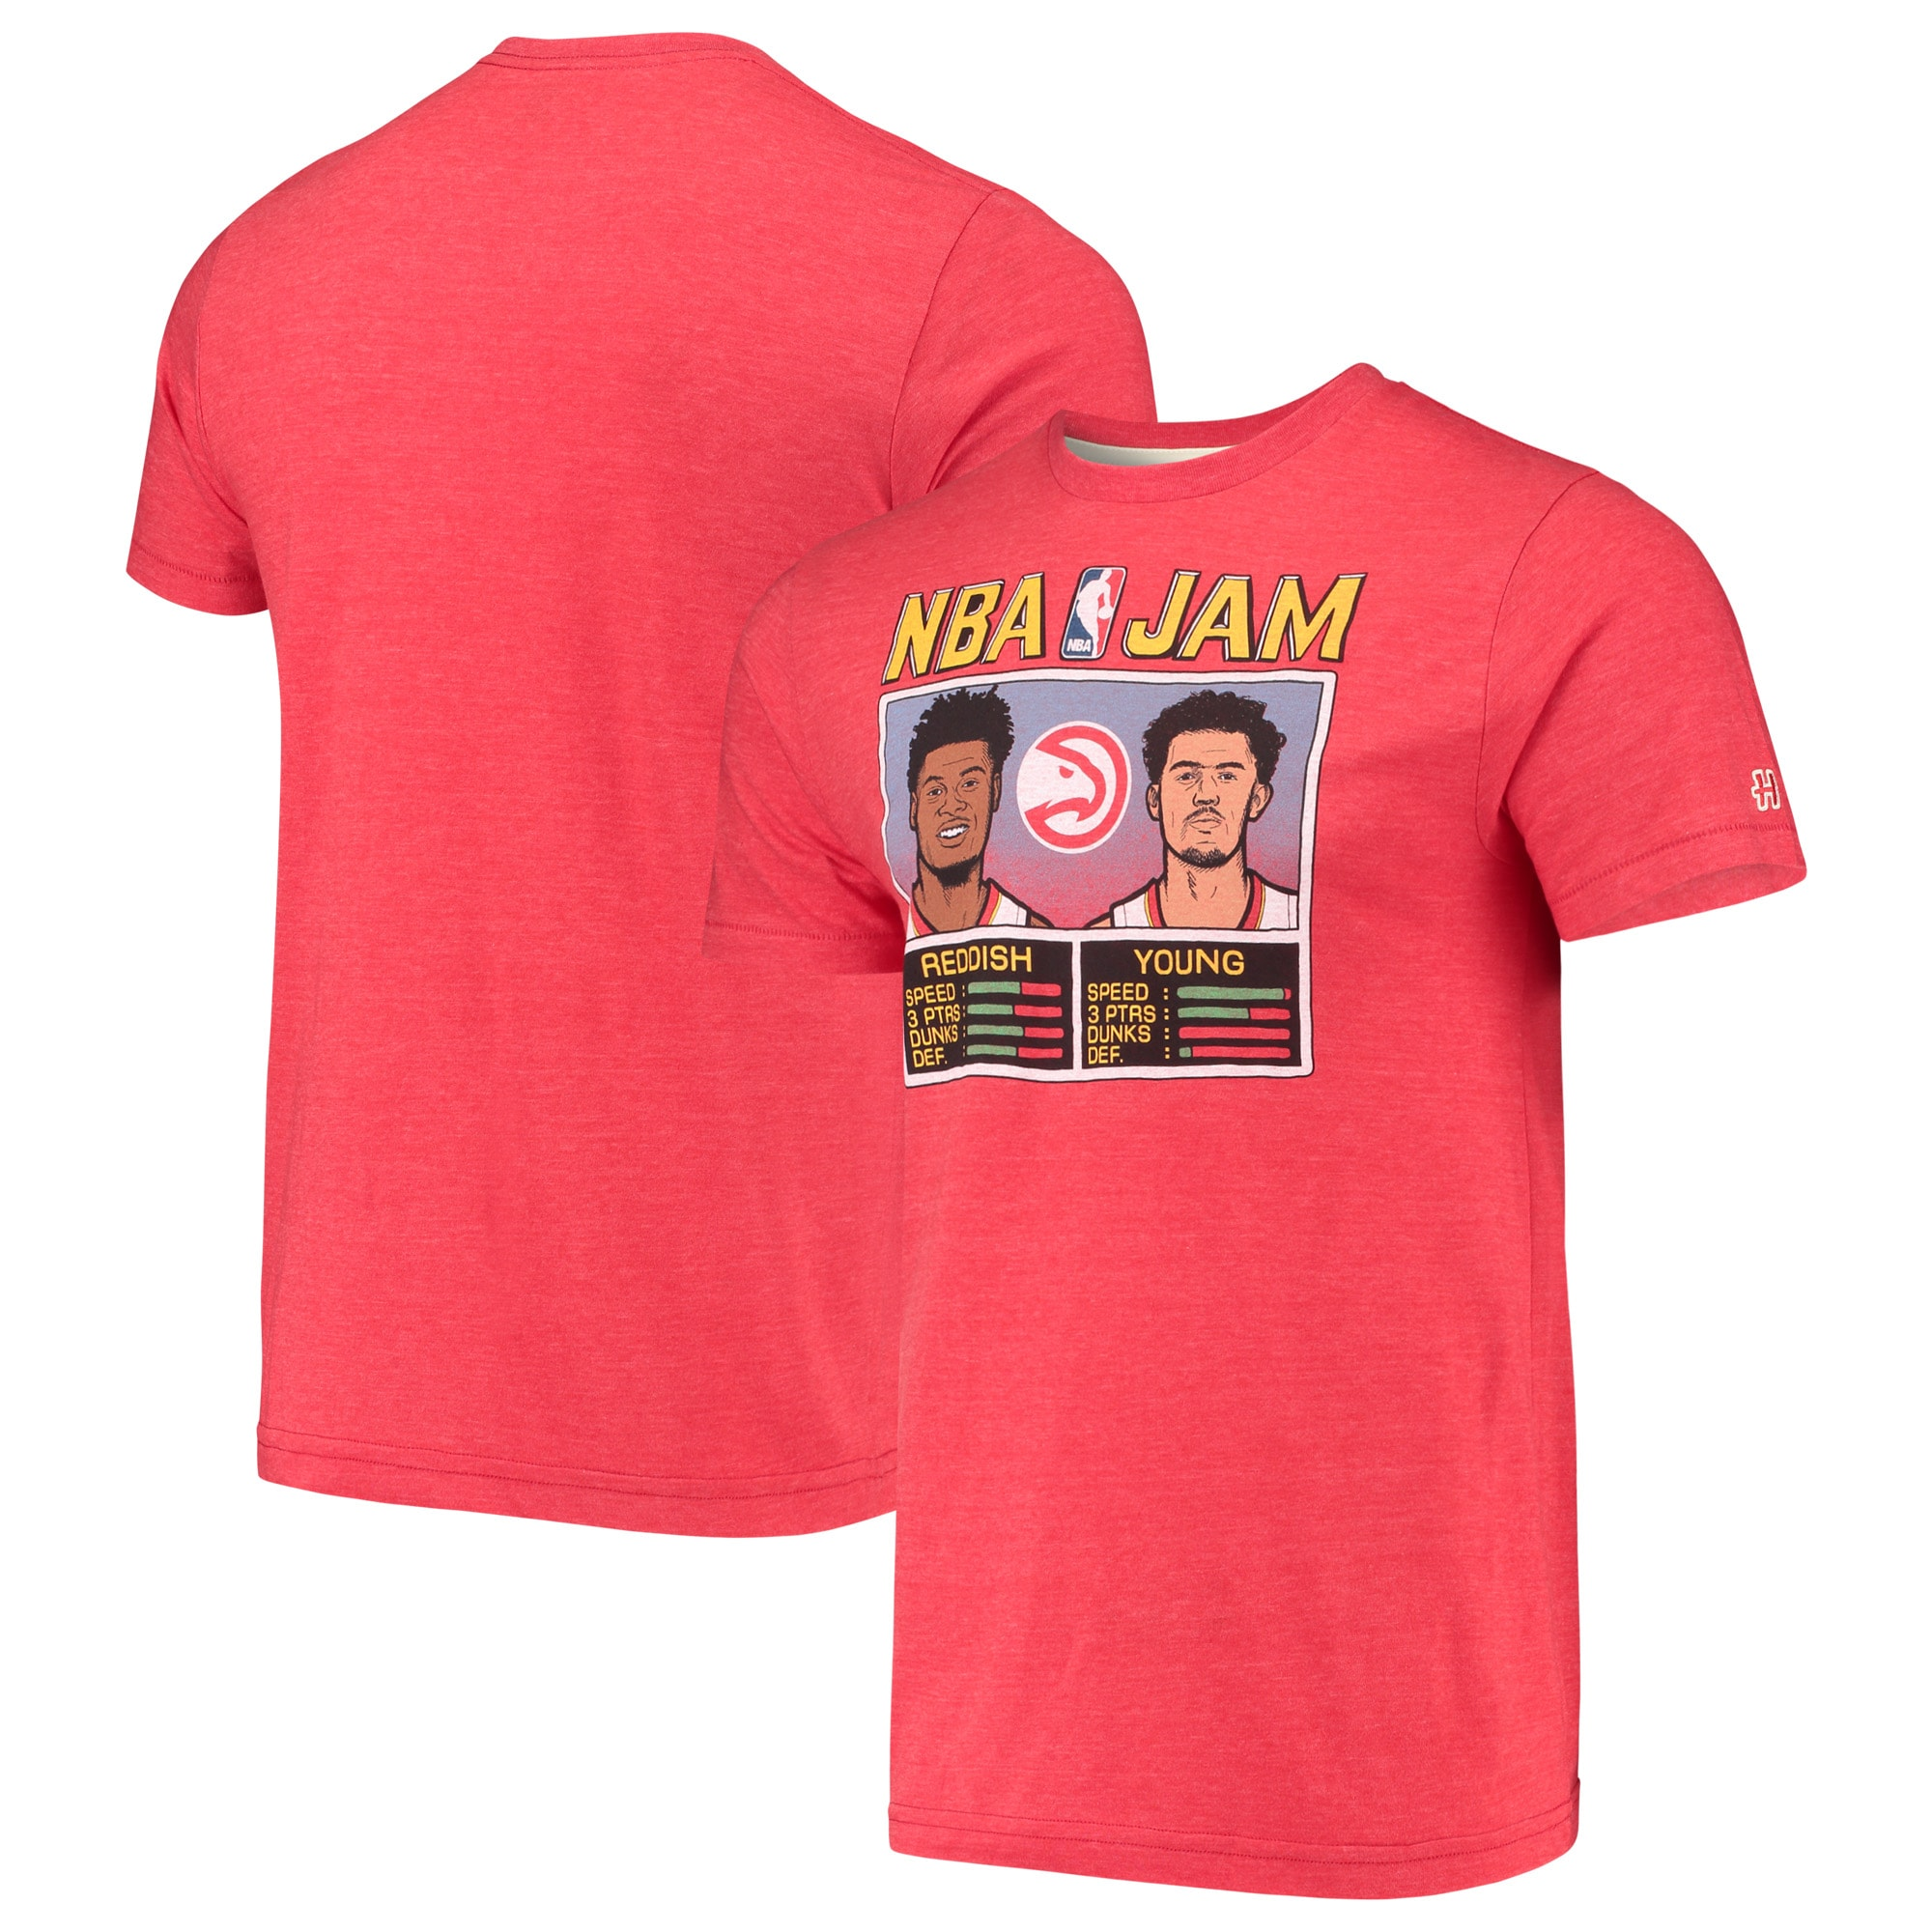 Cam Reddish & Trae Young Atlanta Hawks NBA Jam T-Shirt - Red